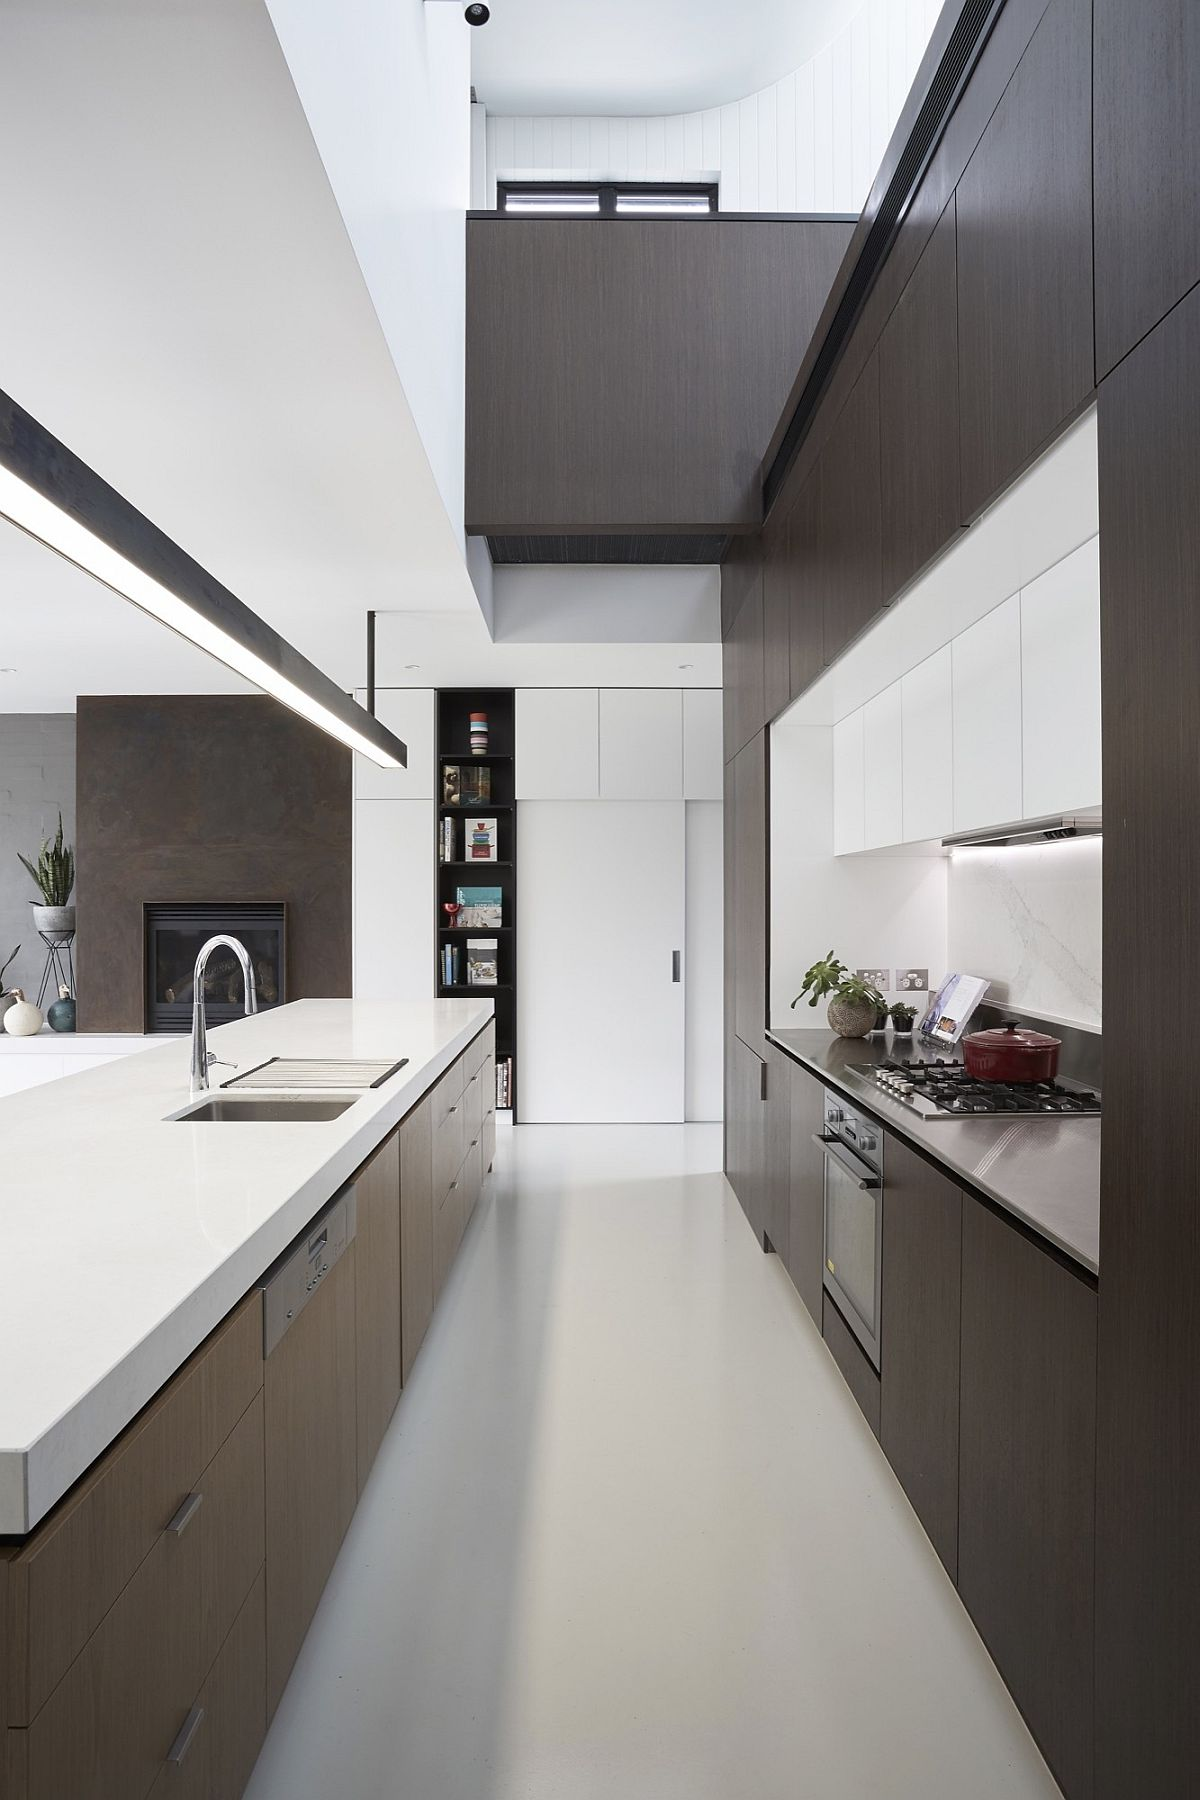 White and wood kitchen with double height ceiling